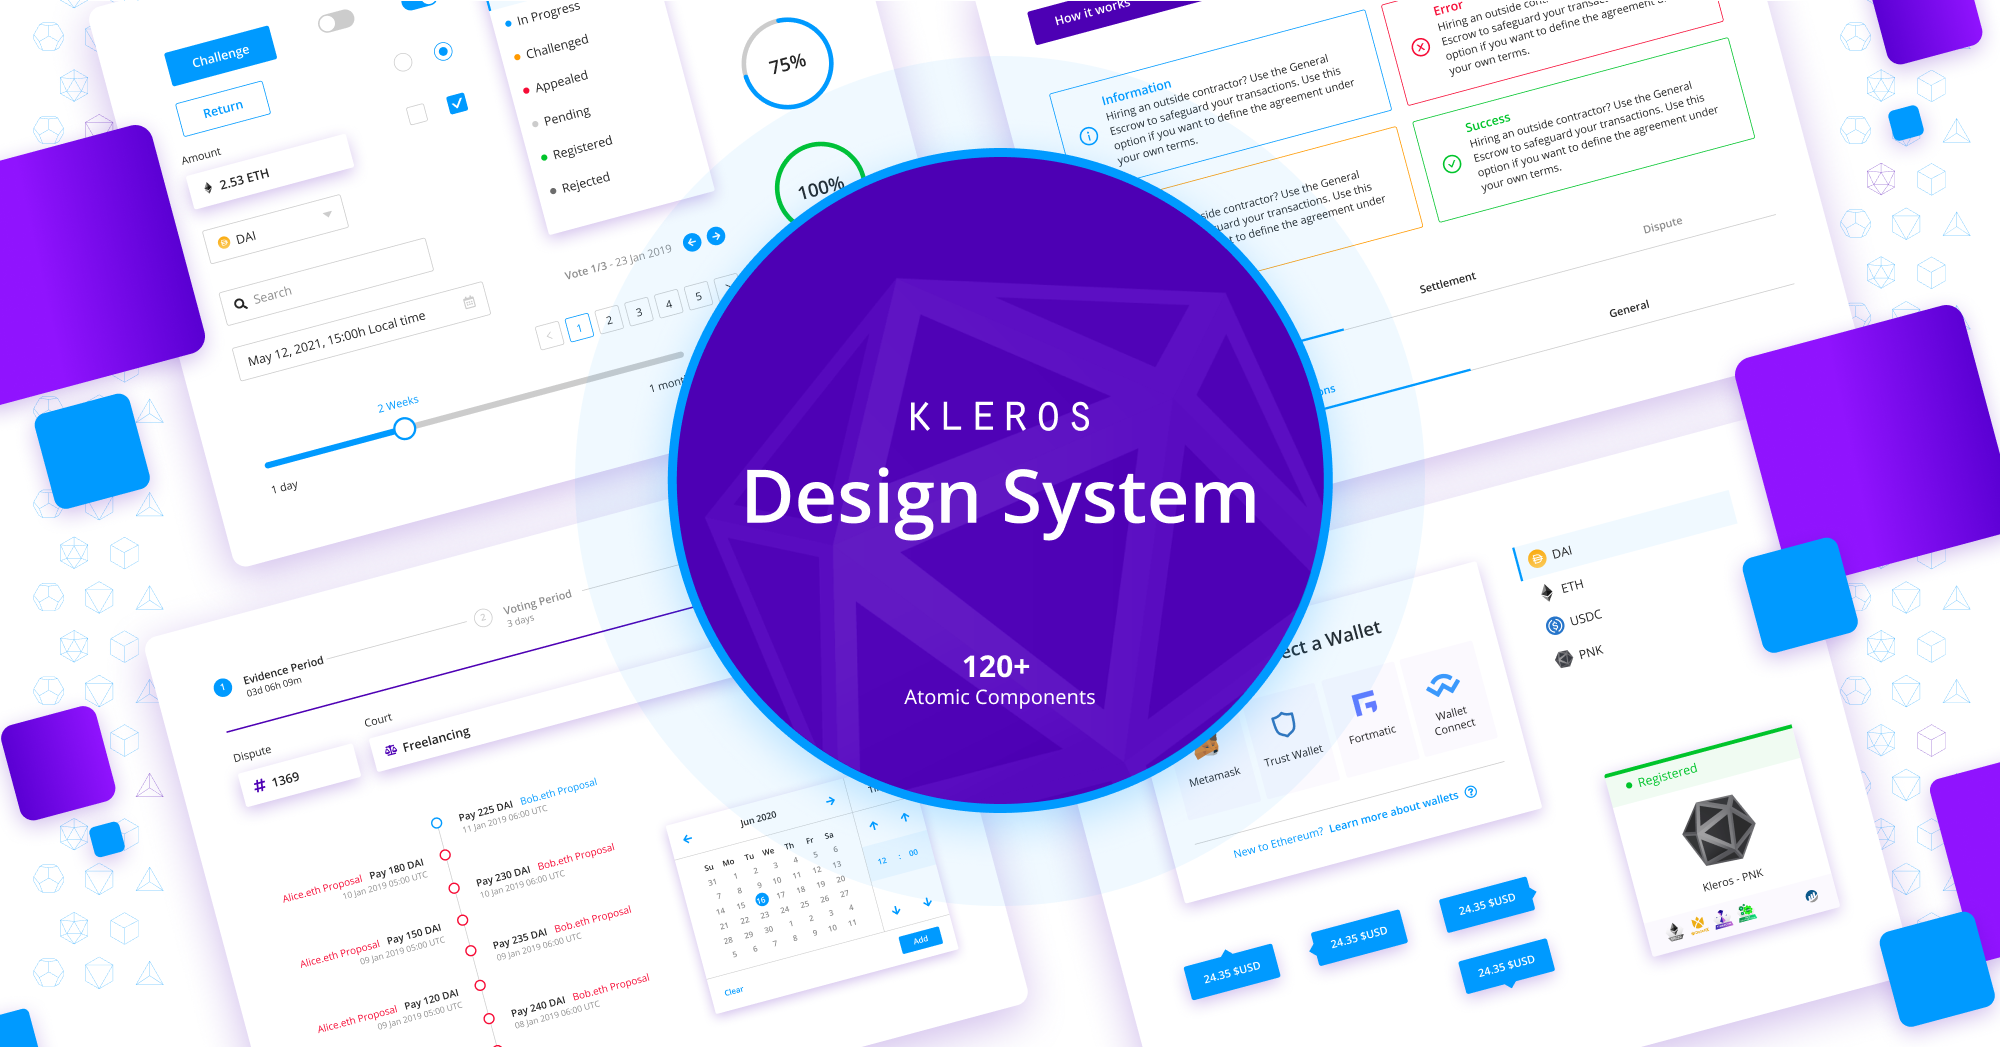 The Kleros Design System Part 1: The Principles, Structure, UI Library